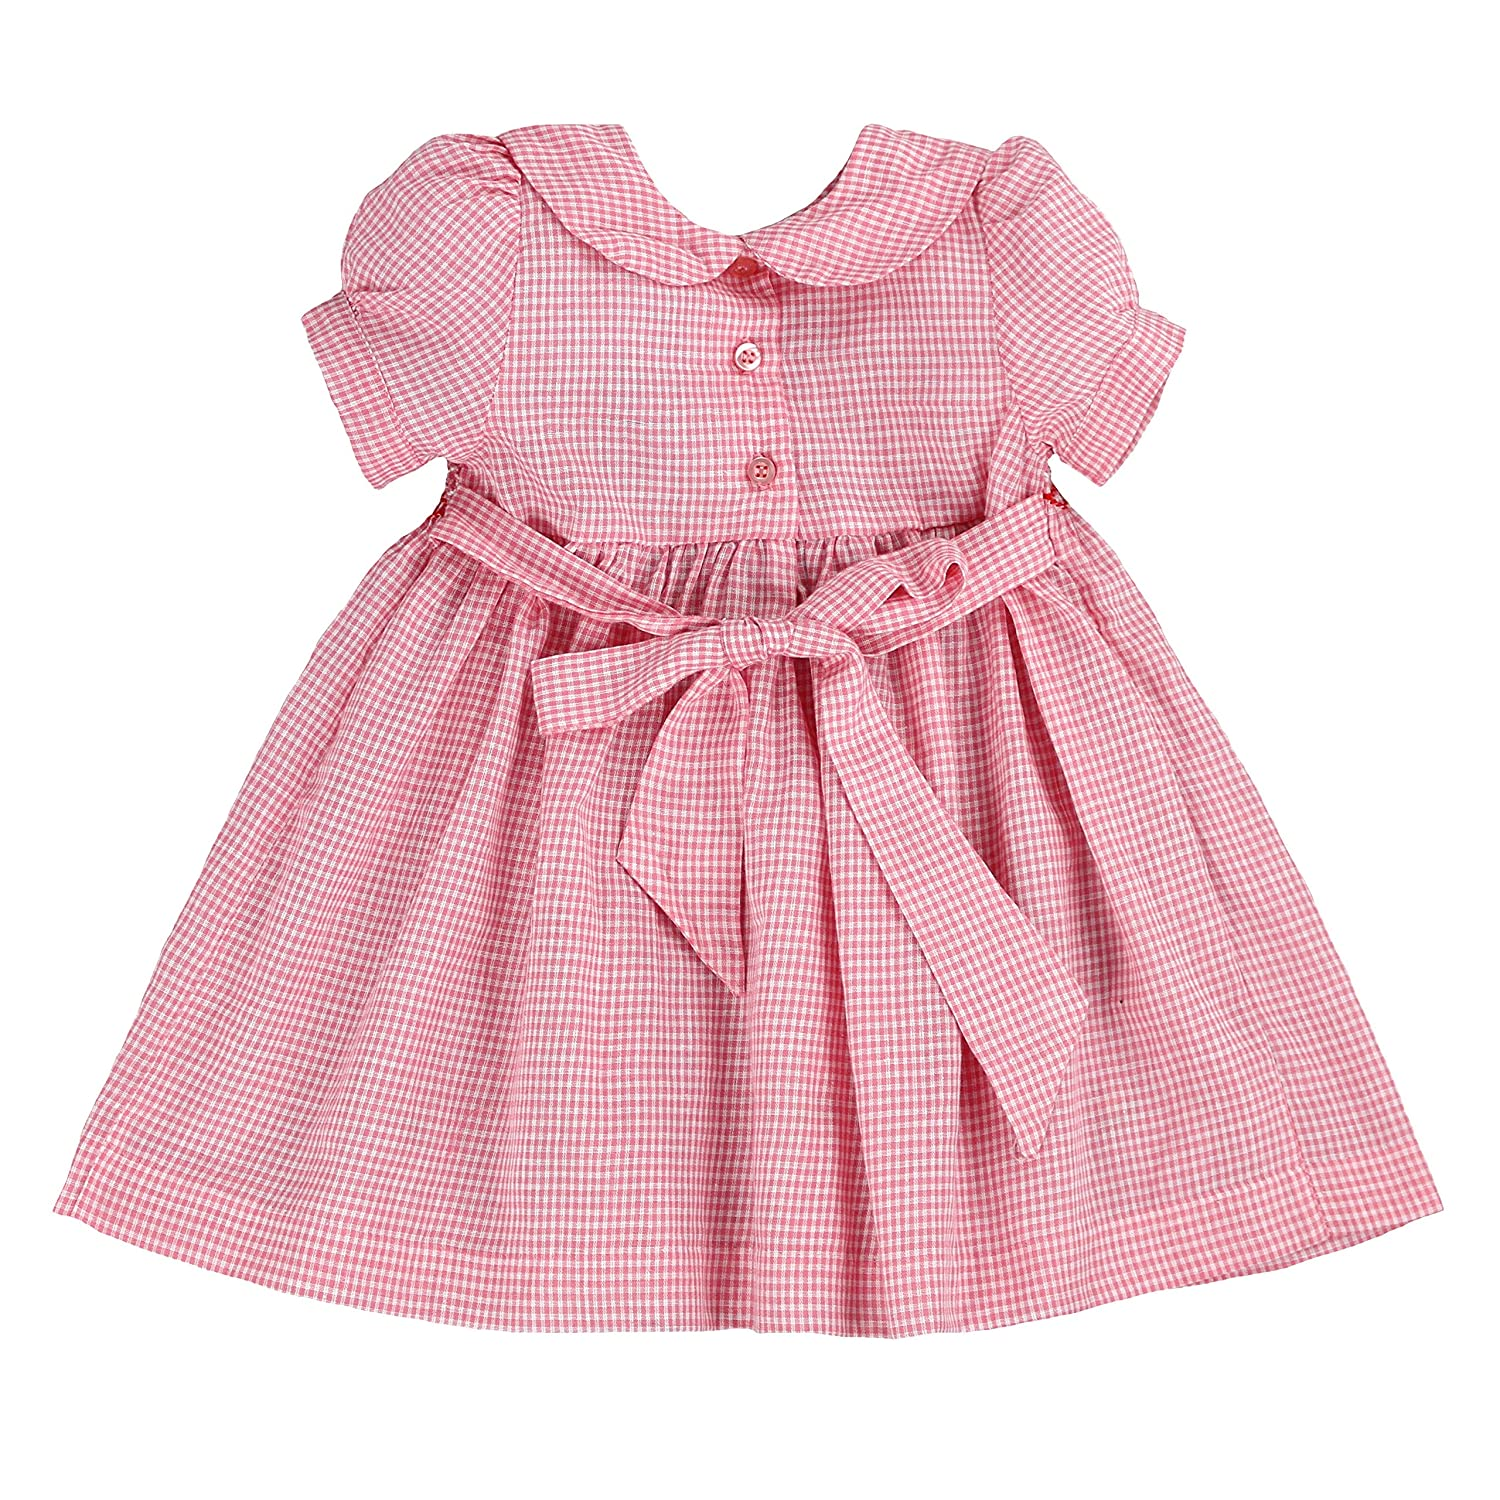 d71df29d5484 Amazon.com: sissymini - Infant and Toddlers Hand Smocked Dress | Primrose  Purcell's Plaid in Pastel Pink 24M: Clothing